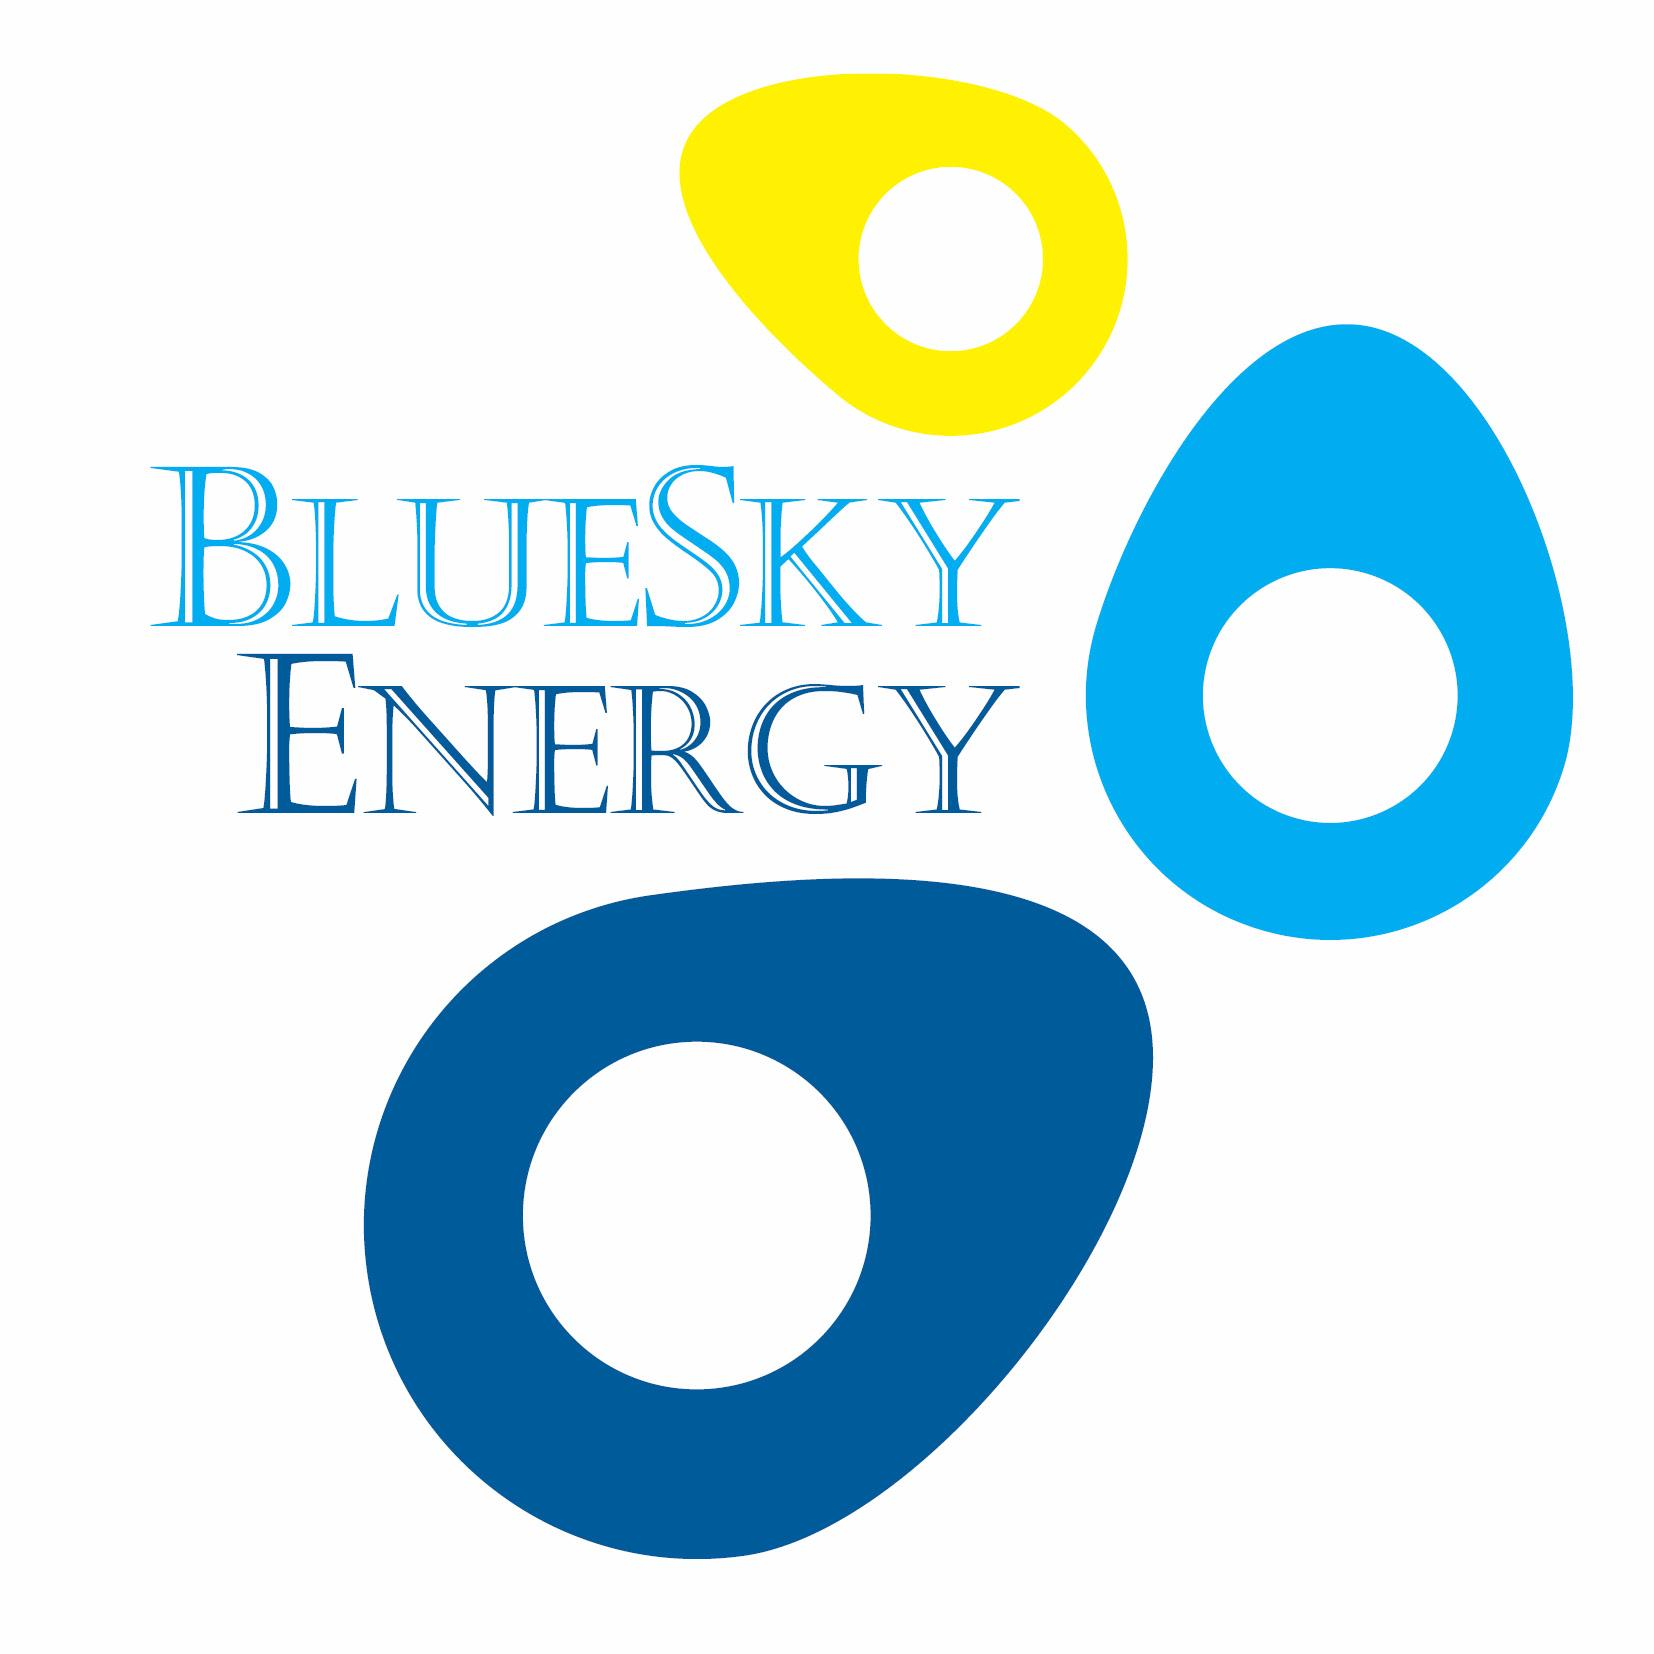 blueskyenergy